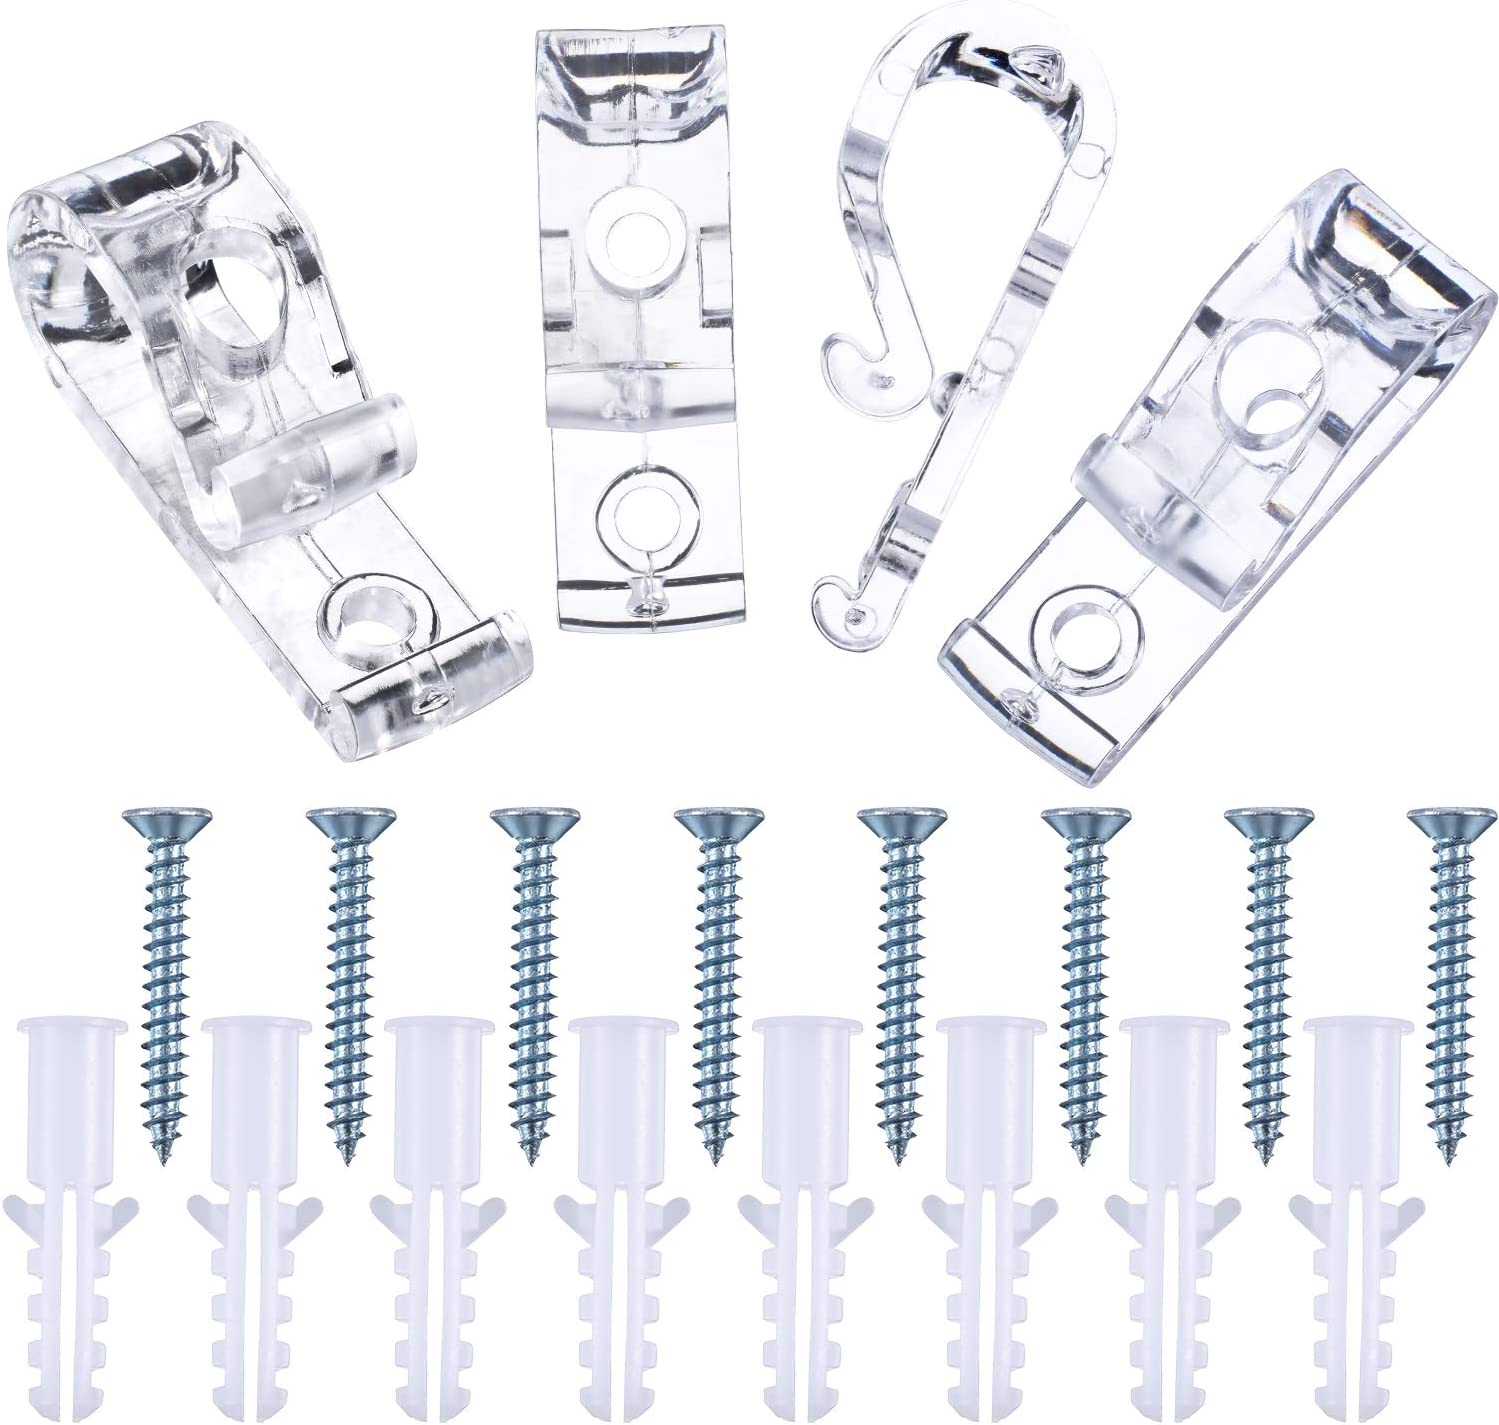 TRIPLE BREAKAWAY x6 ROLLER BLIND CHAIN CHILD SAFETY CONNECTORS LATEST DESIGN